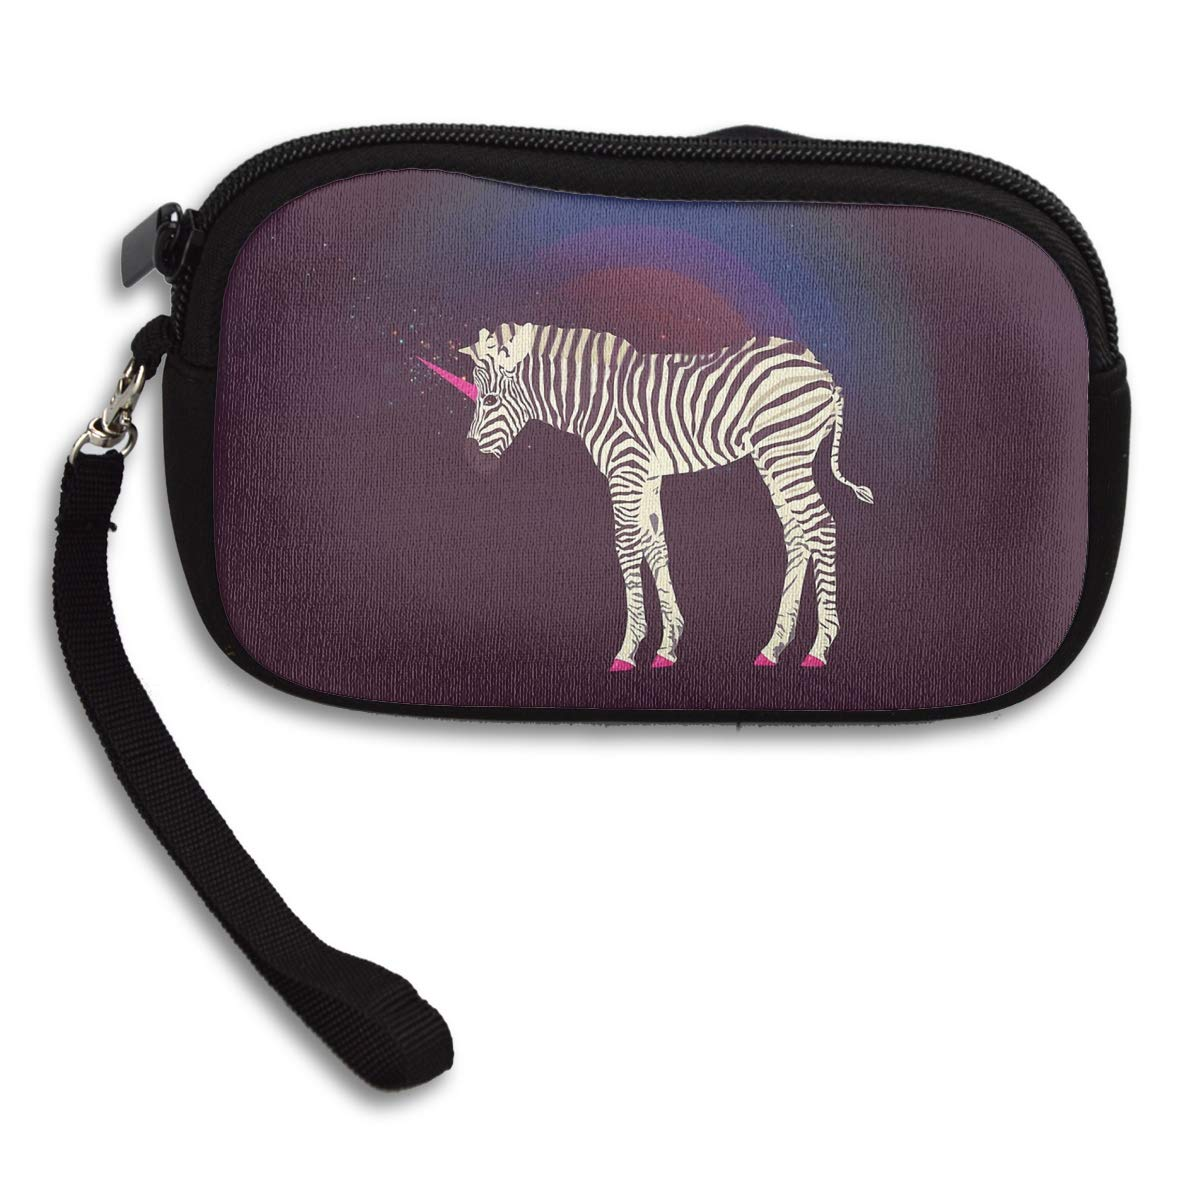 Magic Unicorn Zebra Coin Pouch Clutch Purse Wristlet Wallet Phone Card Holder Handbag